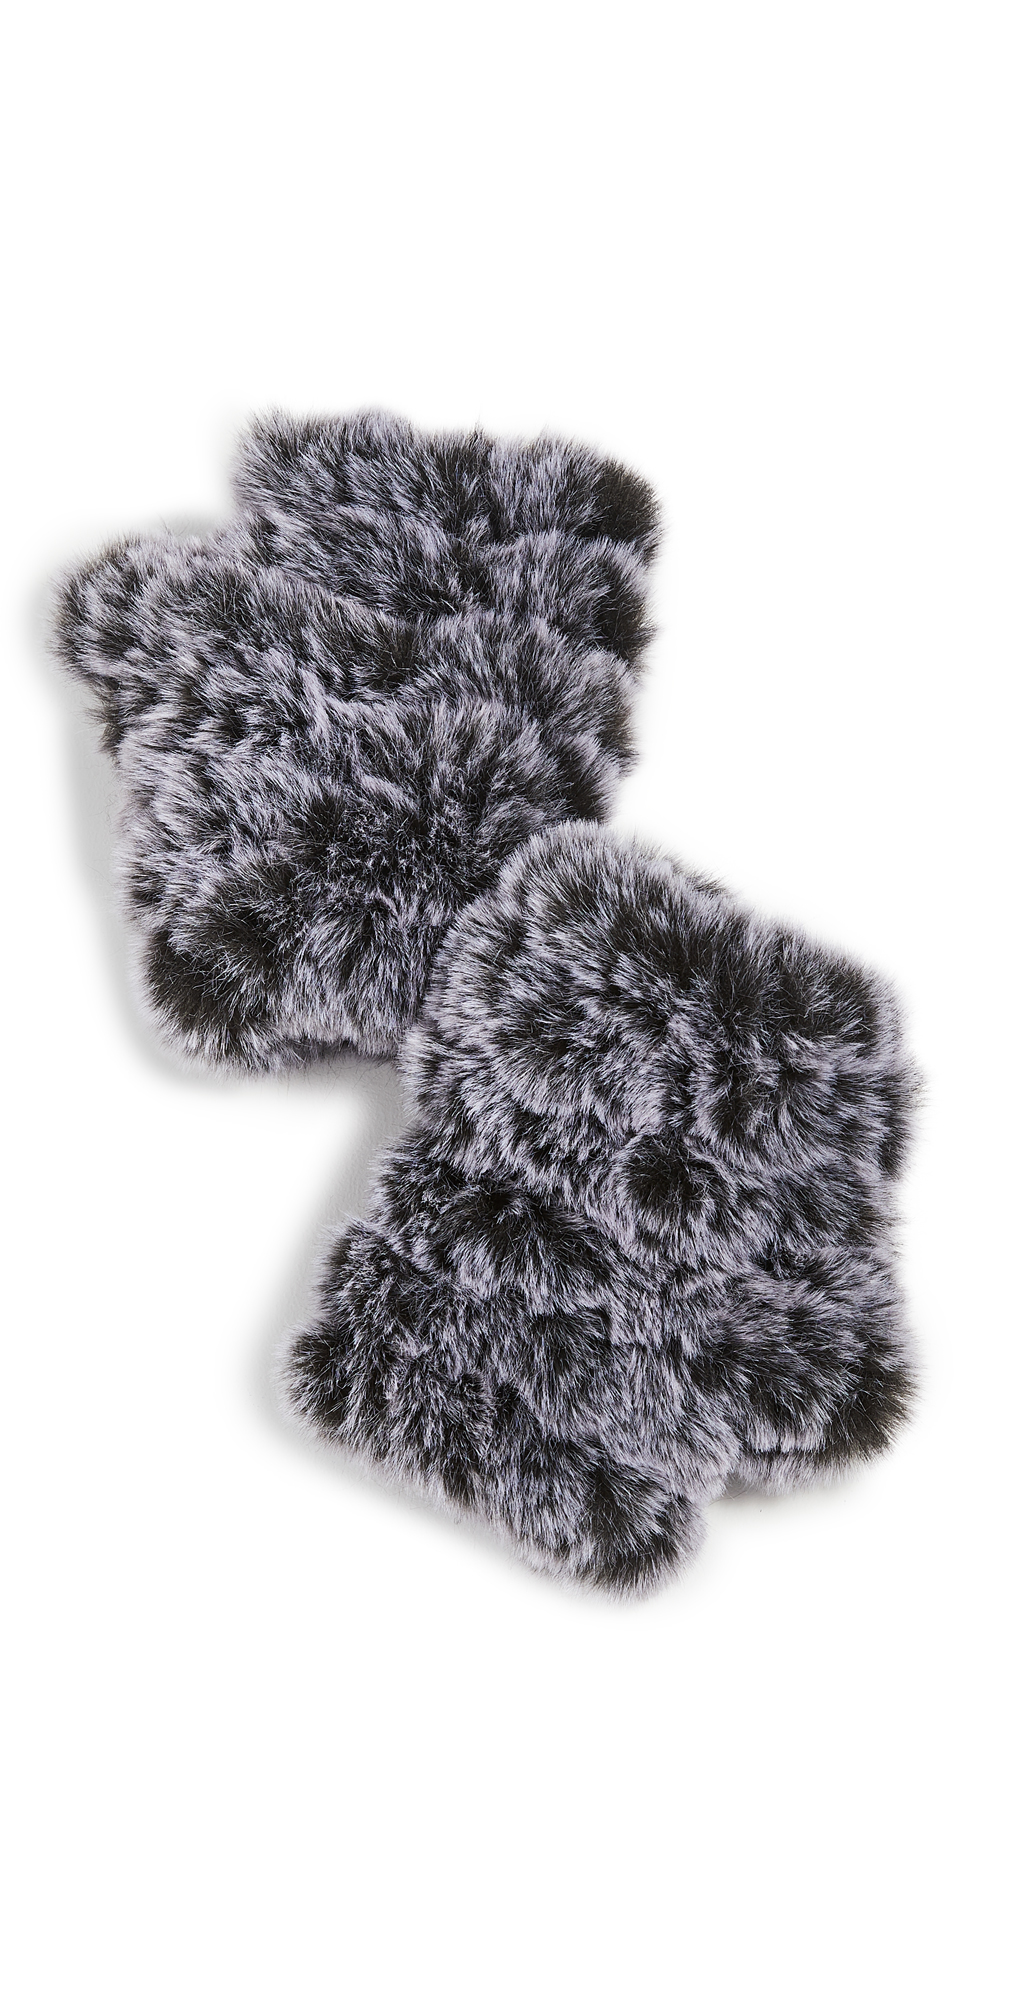 Snowtop Faux Fur Knitted Mandy Mittens